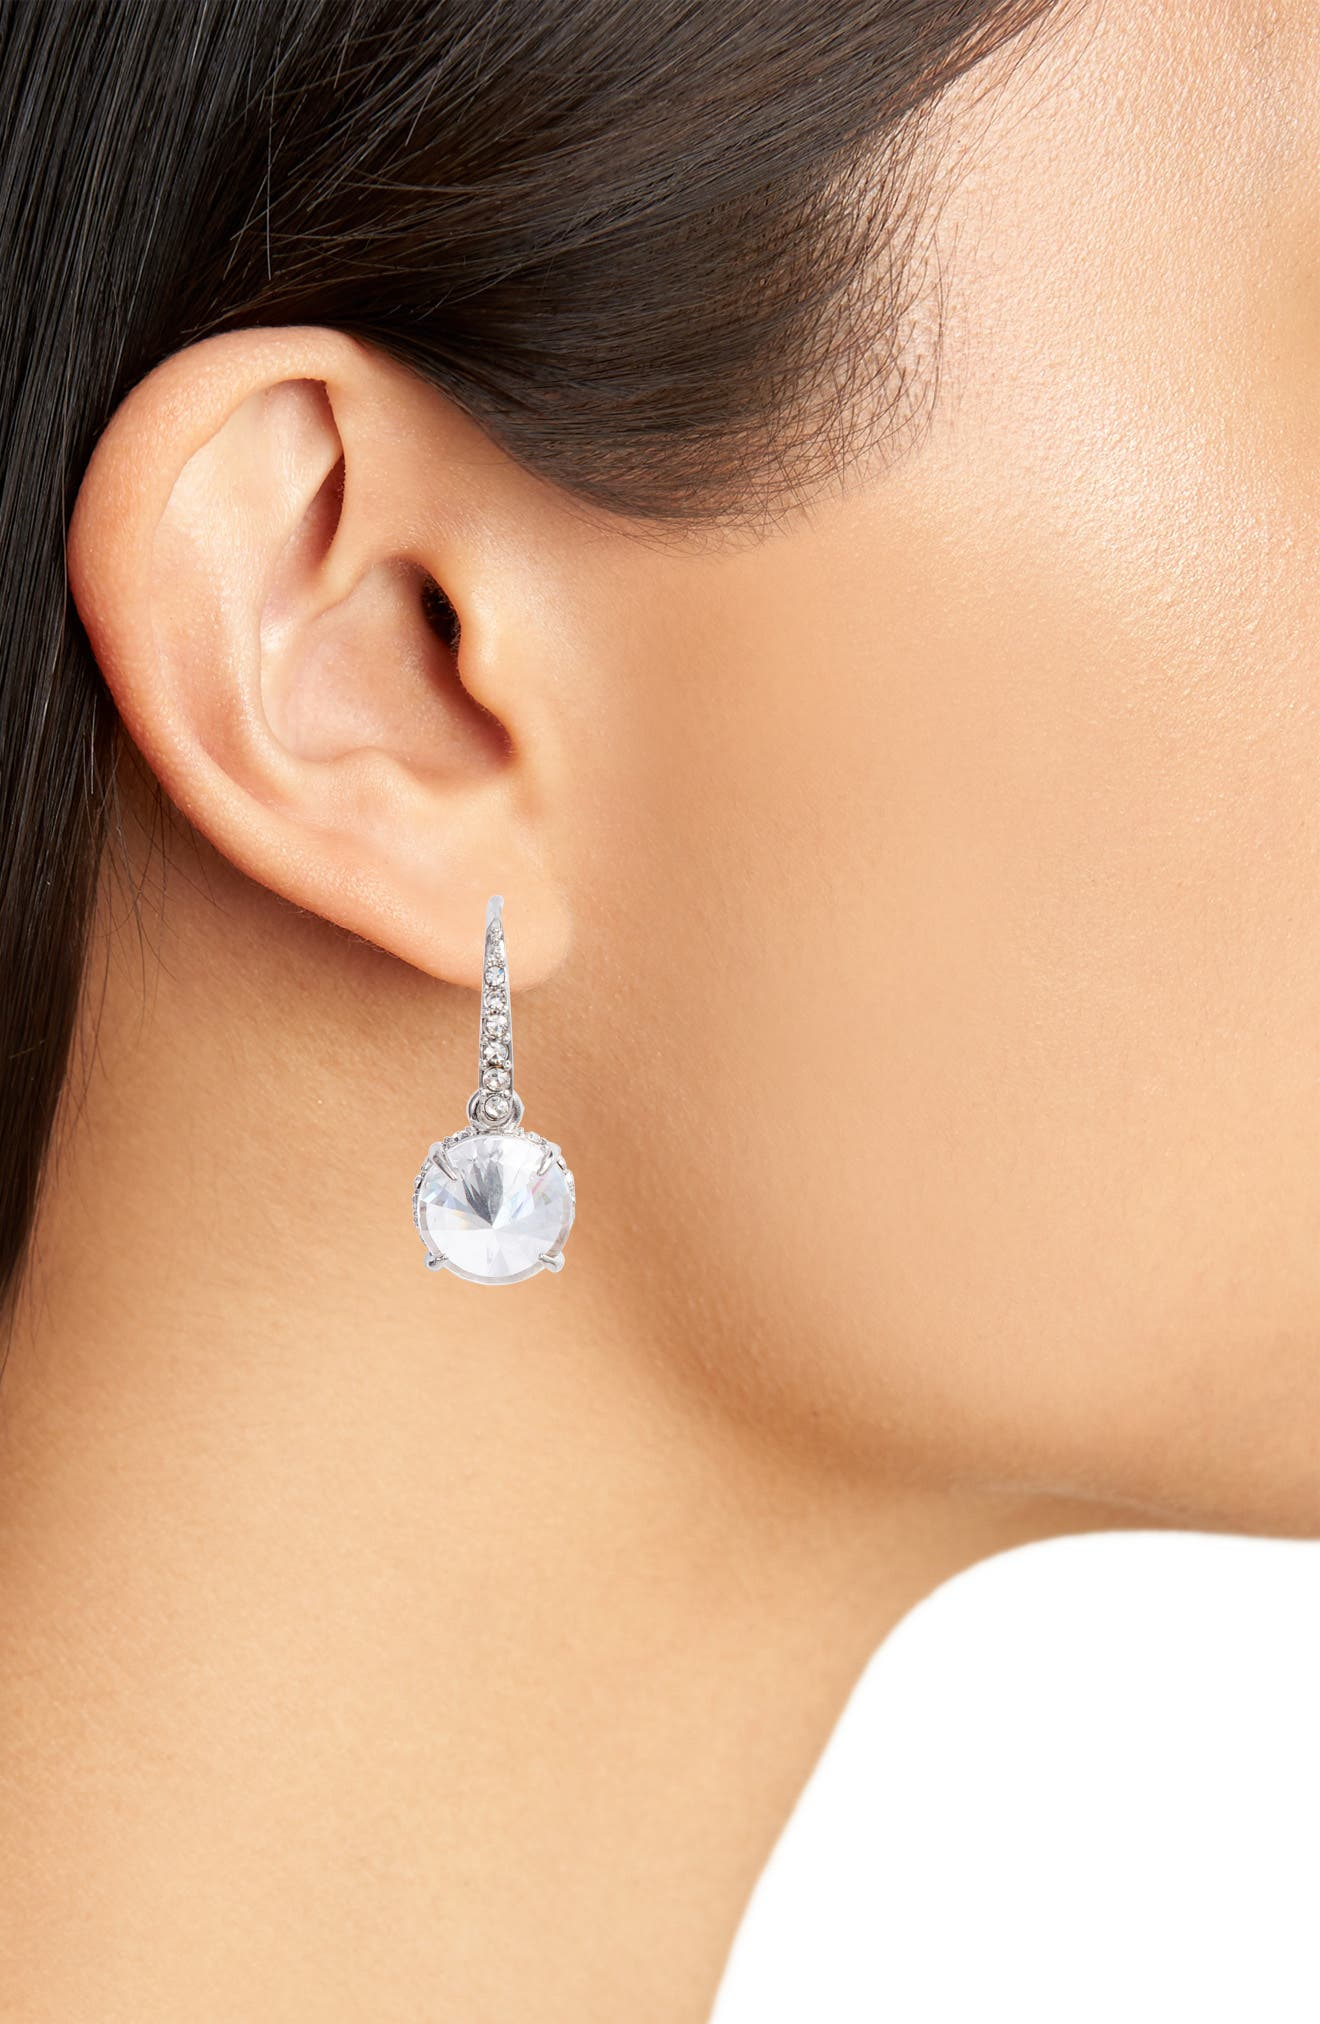 Rivoli Drop Earrings,                             Alternate thumbnail 2, color,                             041